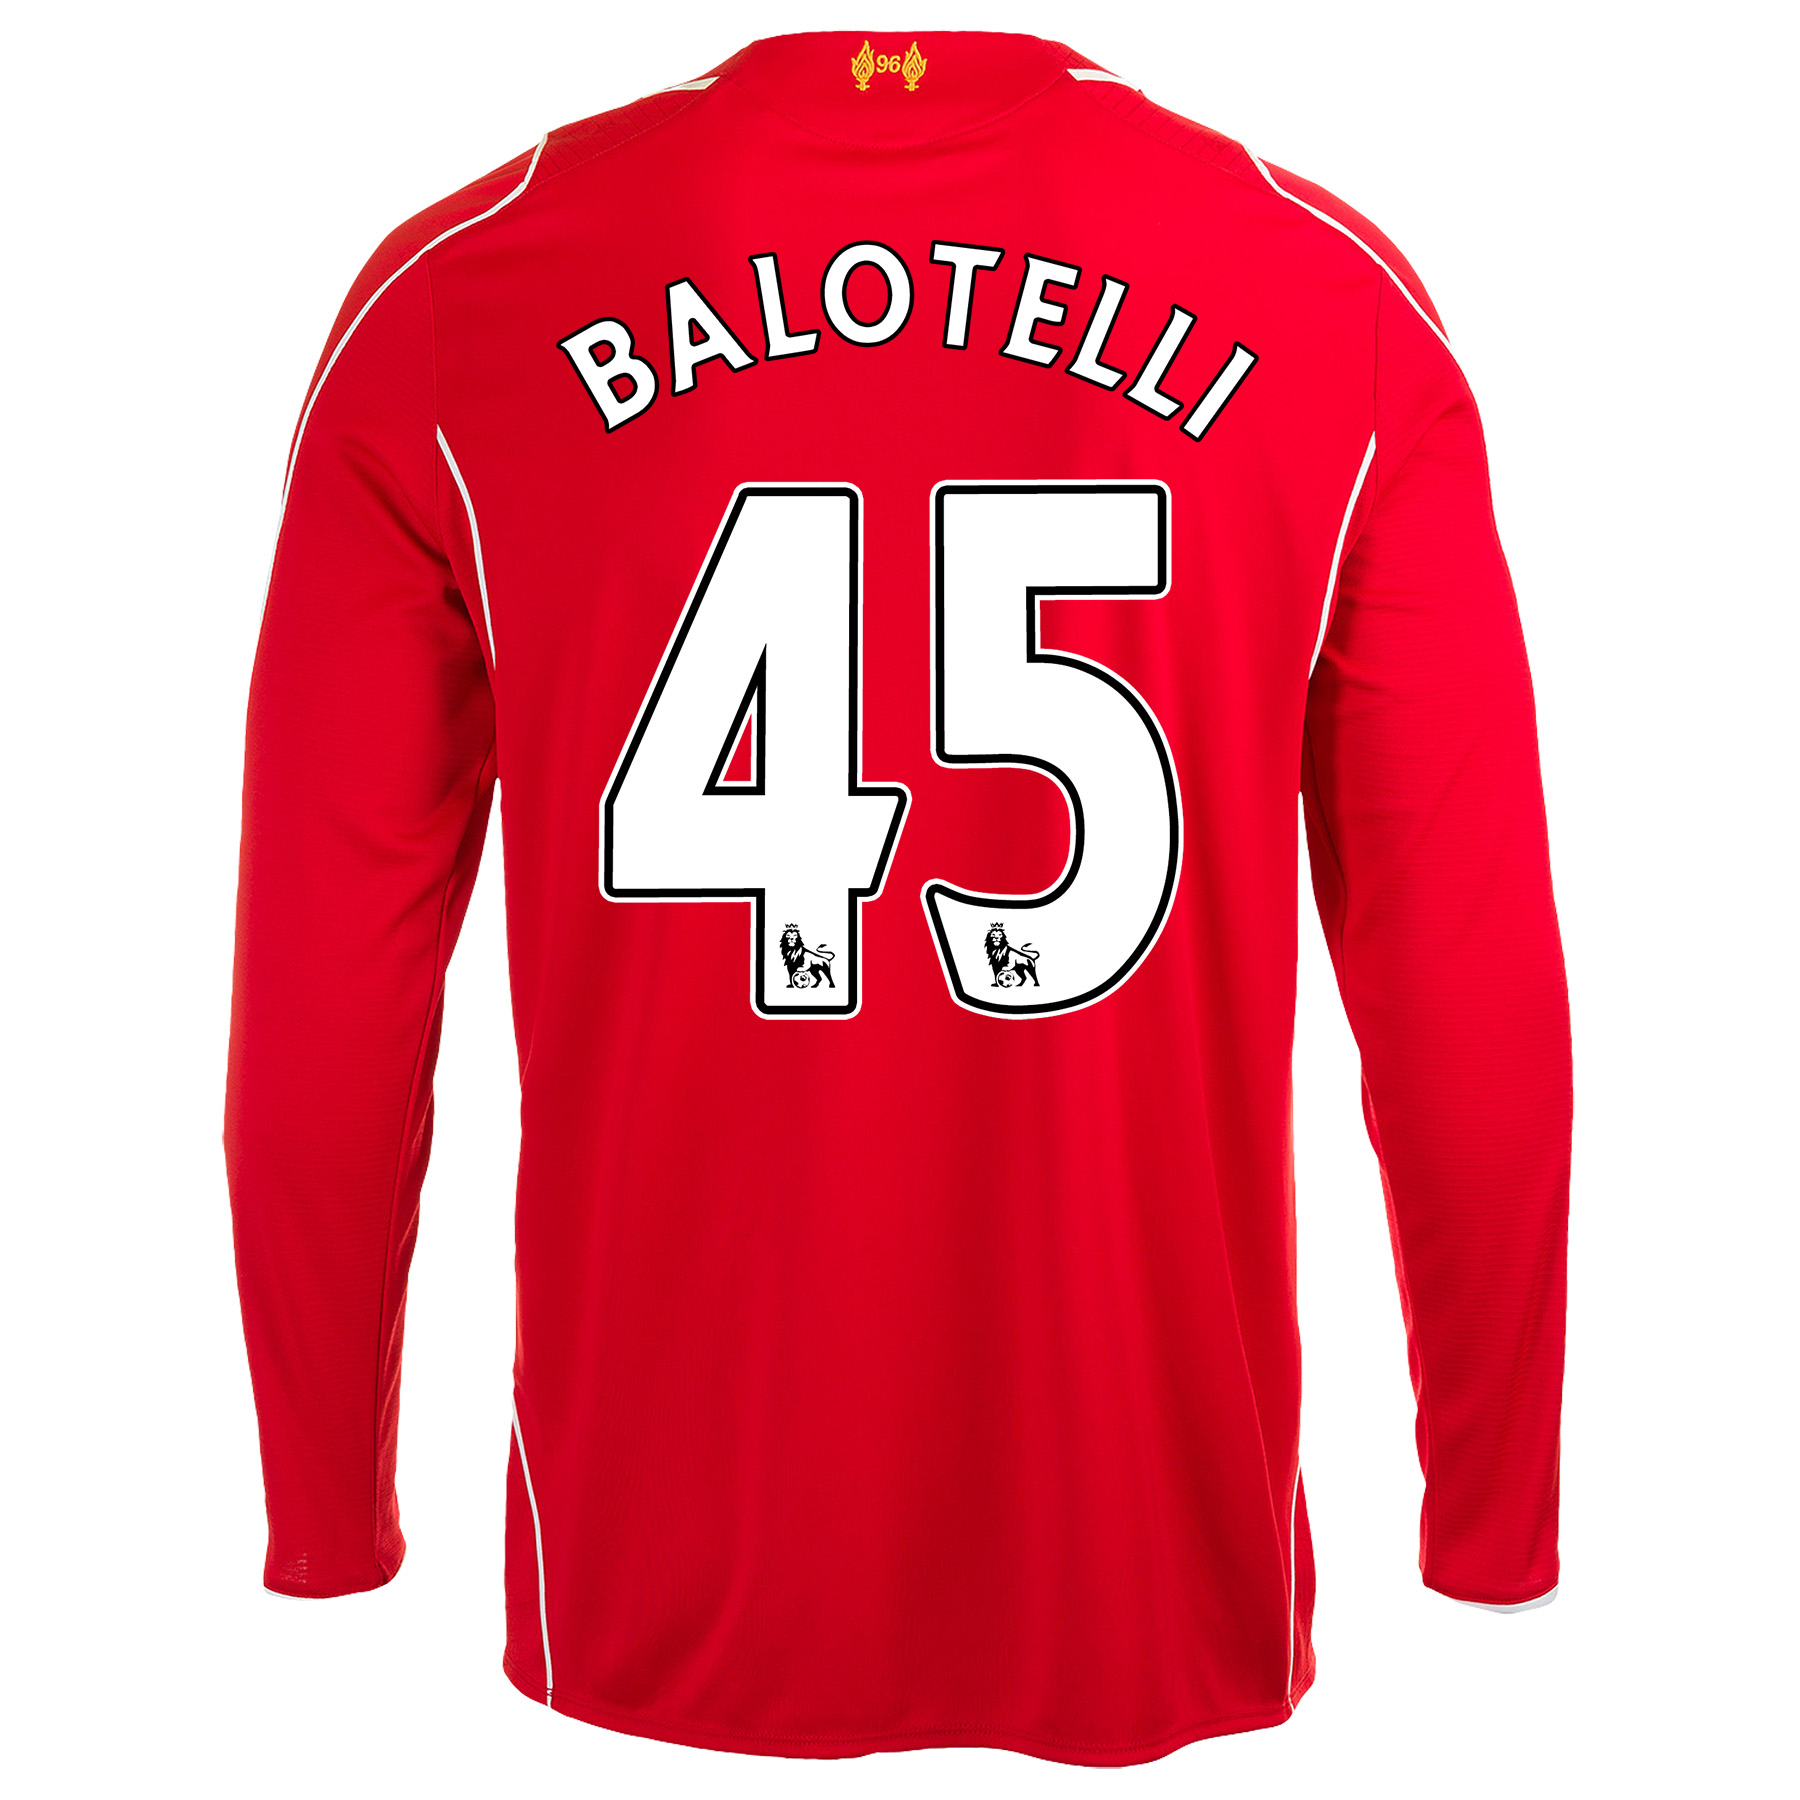 Liverpool Home Shirt 2014/15 Long Sleeve with Balotelli 45 printing